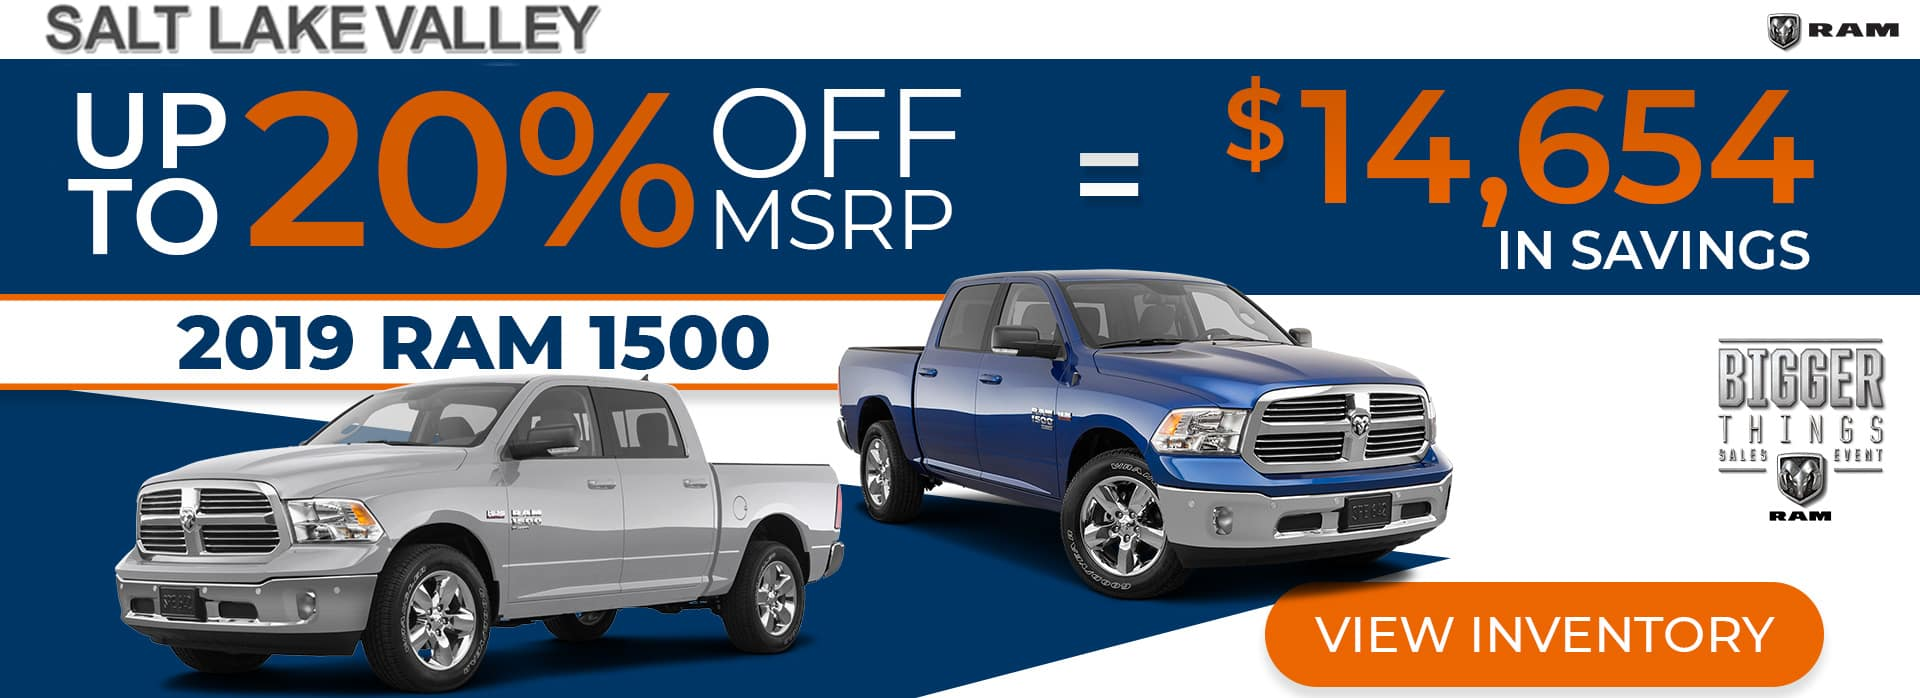 4th of July Sales Event on Ram 1500 Classic